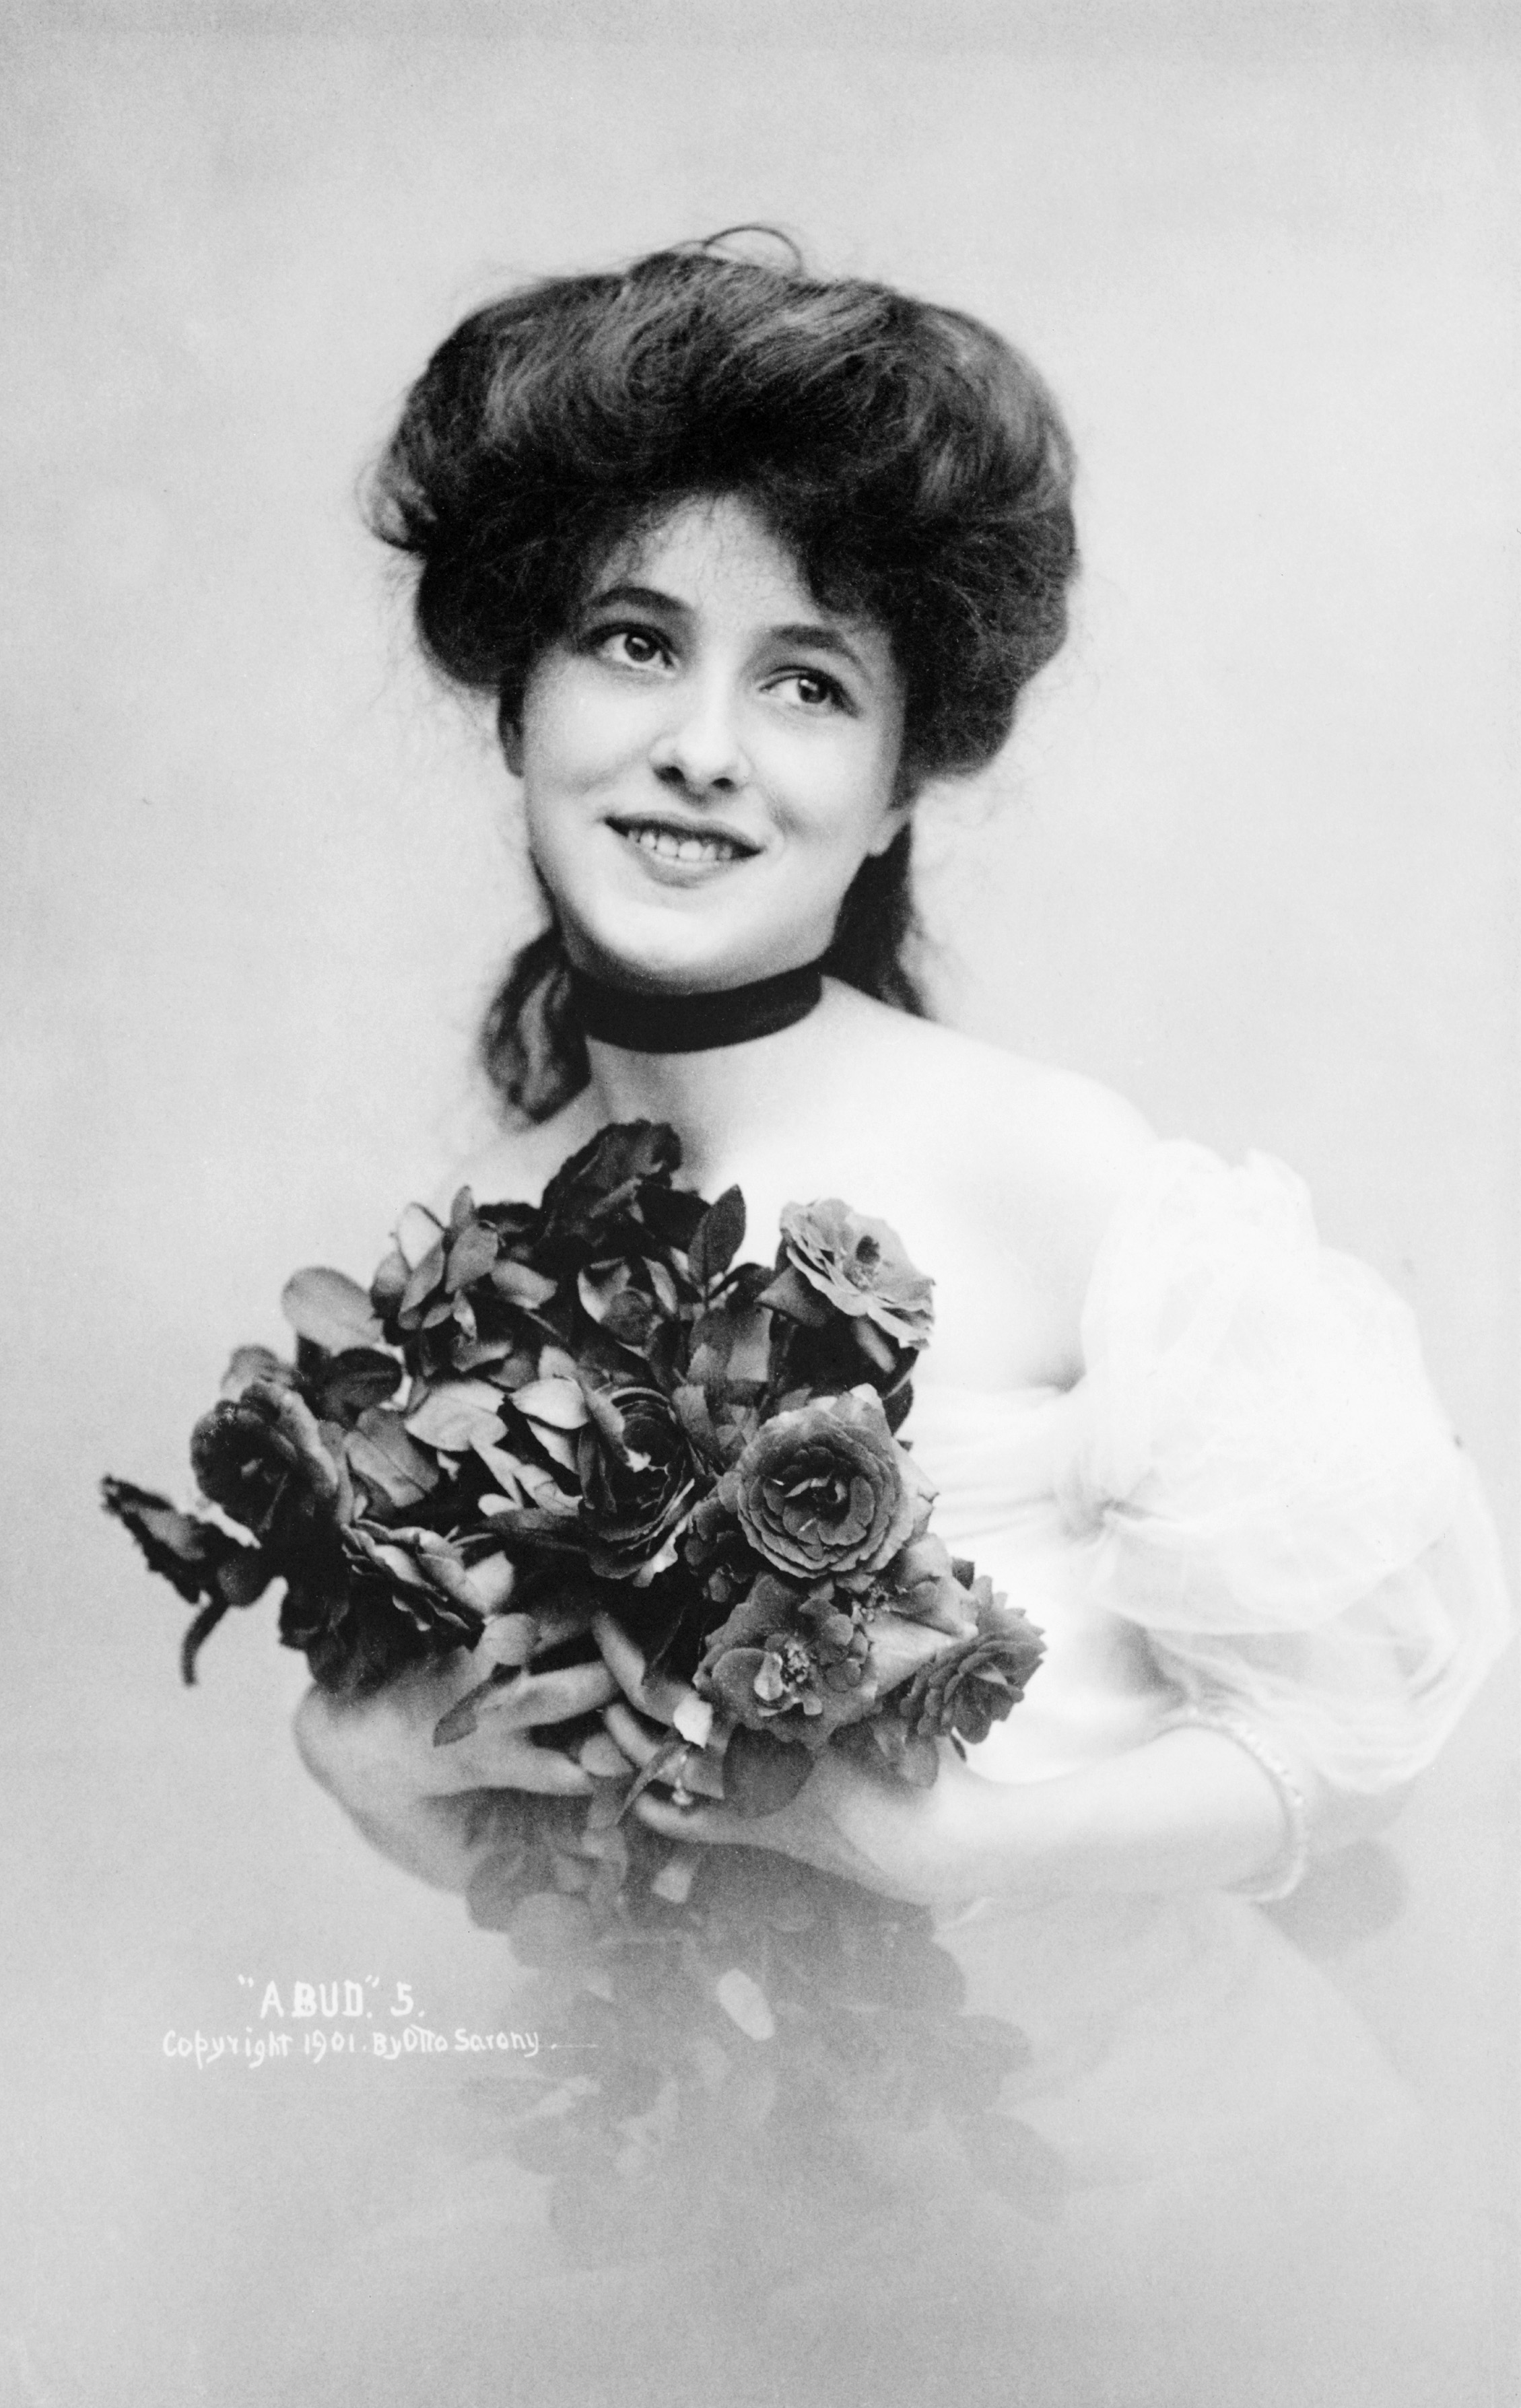 nesbit girls Evelyn nesbit – known to millions before her 16th birthday in 1900, evelyn was the most photographed woman of her era, an iconic.